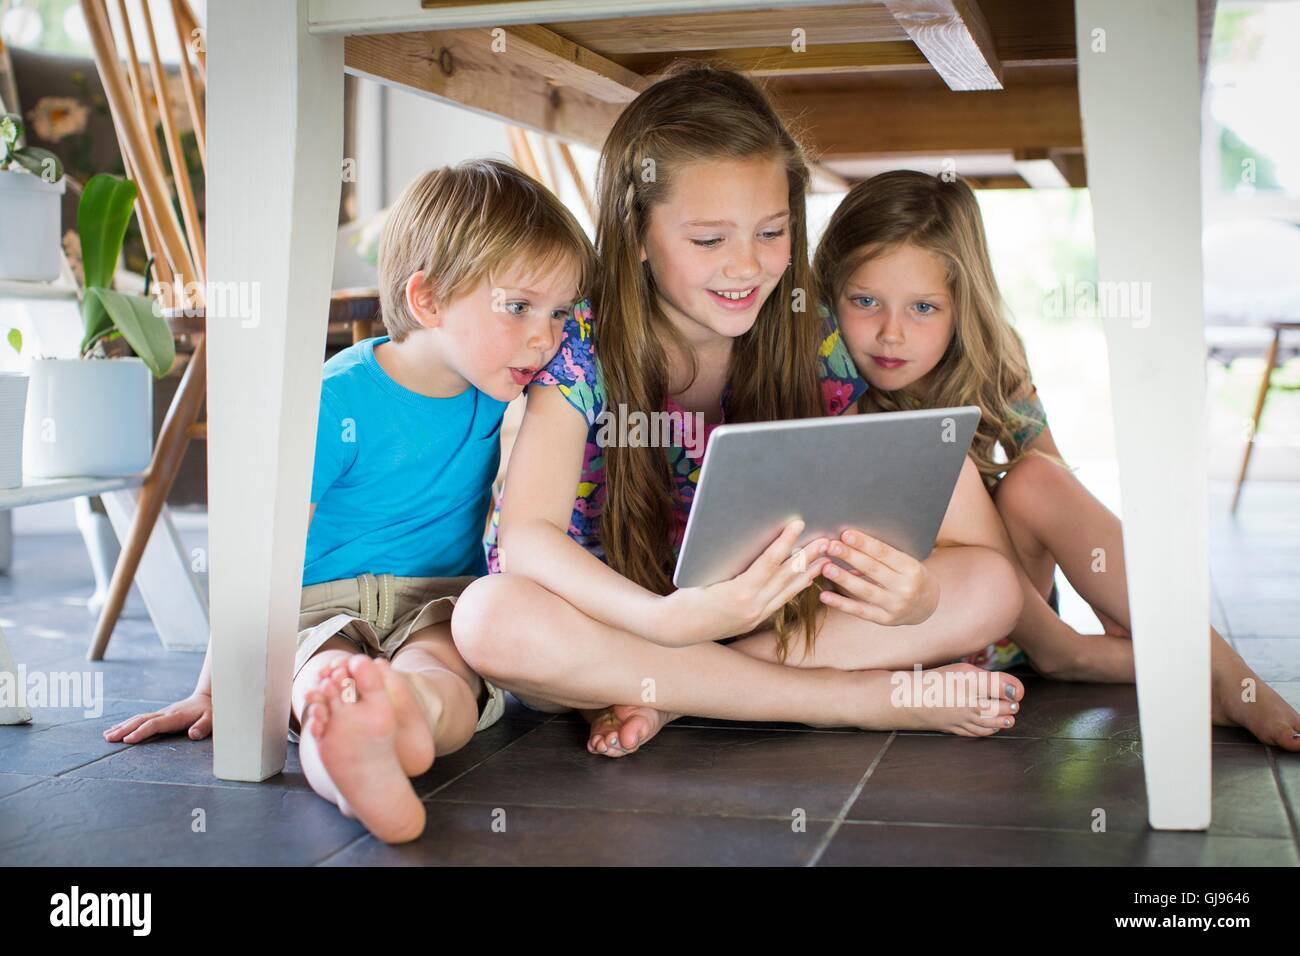 PROPERTY RELEASED. MODEL RELEASED. Three siblings under table with digital tablet. - Stock Image